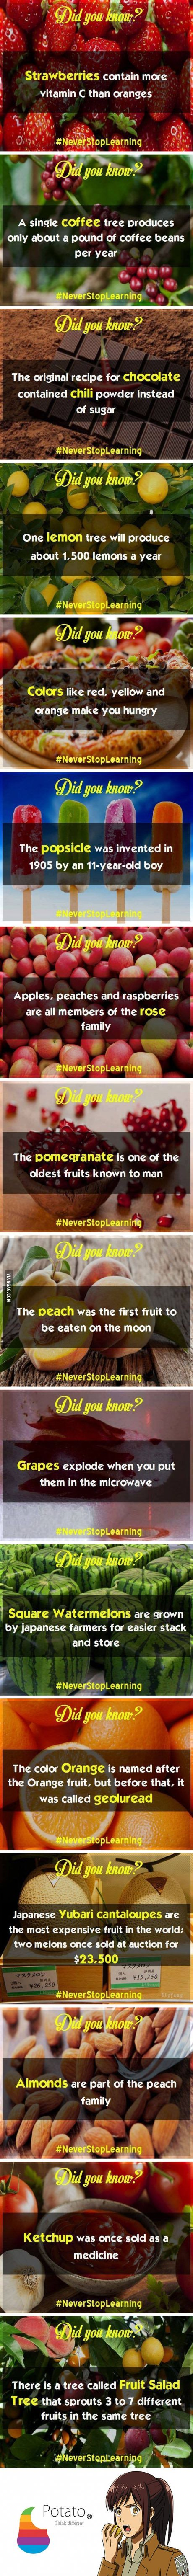 15 Did You Know? Food/Fruit Facts